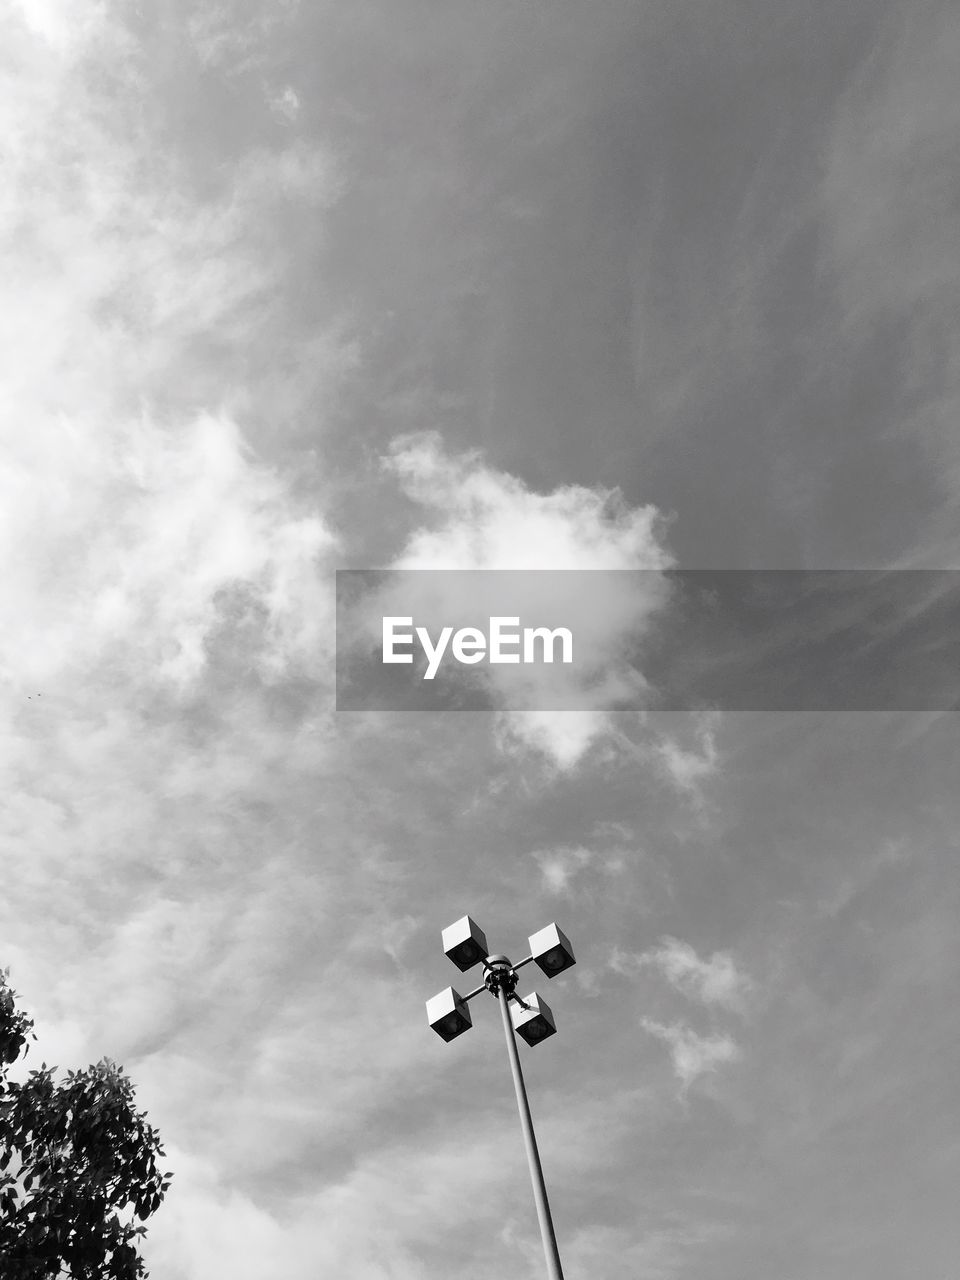 low angle view, guidance, communication, cloud - sky, sky, outdoors, day, no people, floodlight, nature, road sign